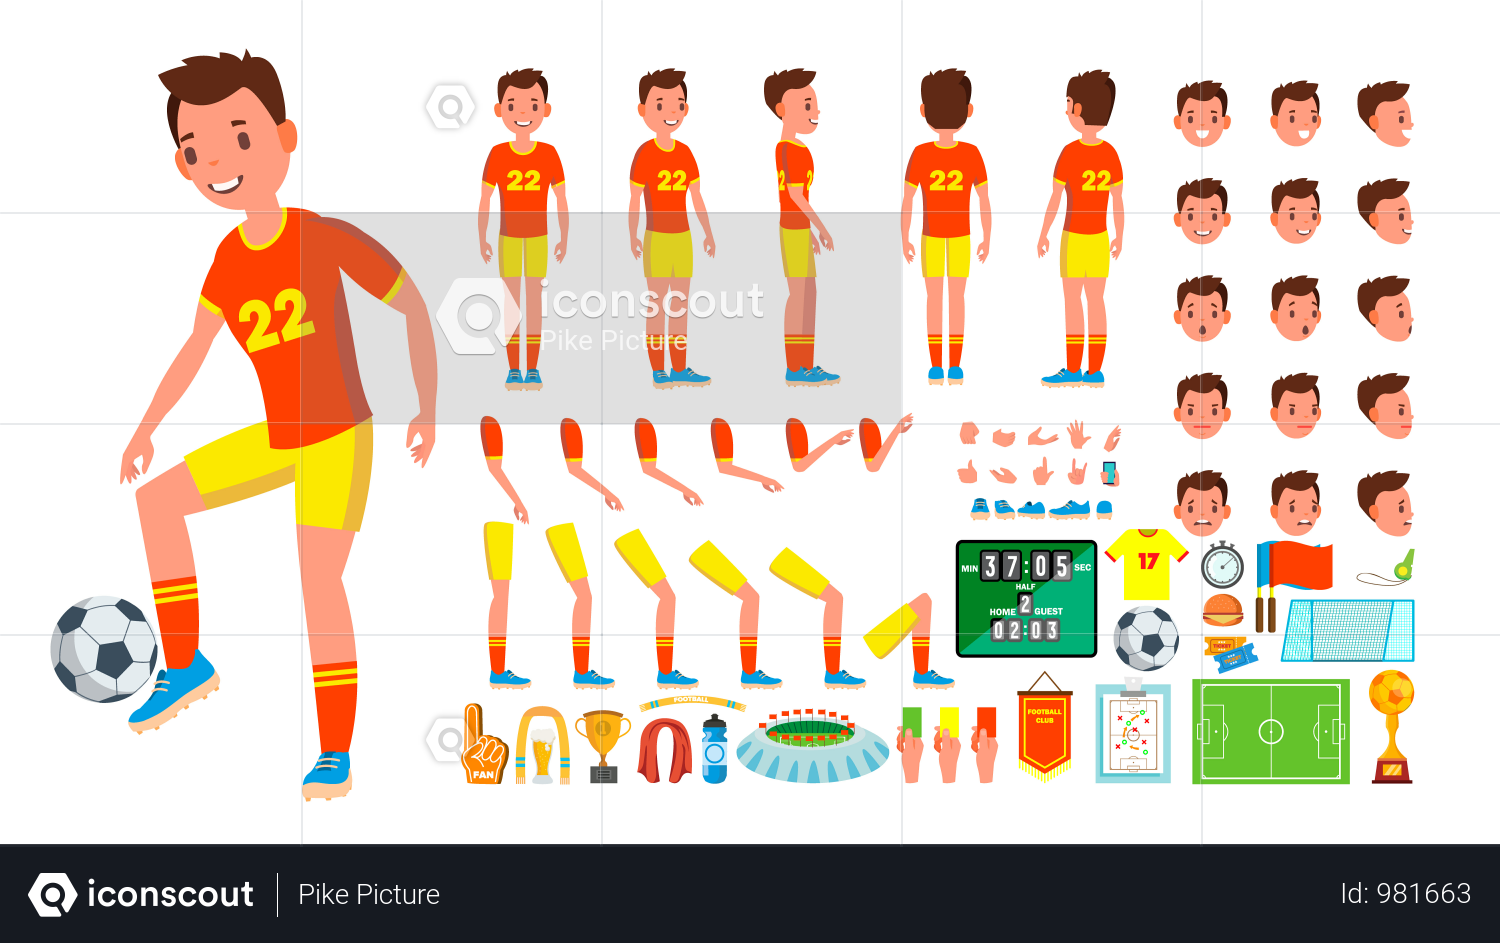 Premium Animated Character Creation Set Of Soccer Player Illustration Download In Png Vector Format Animated Characters Vector Animation Animation